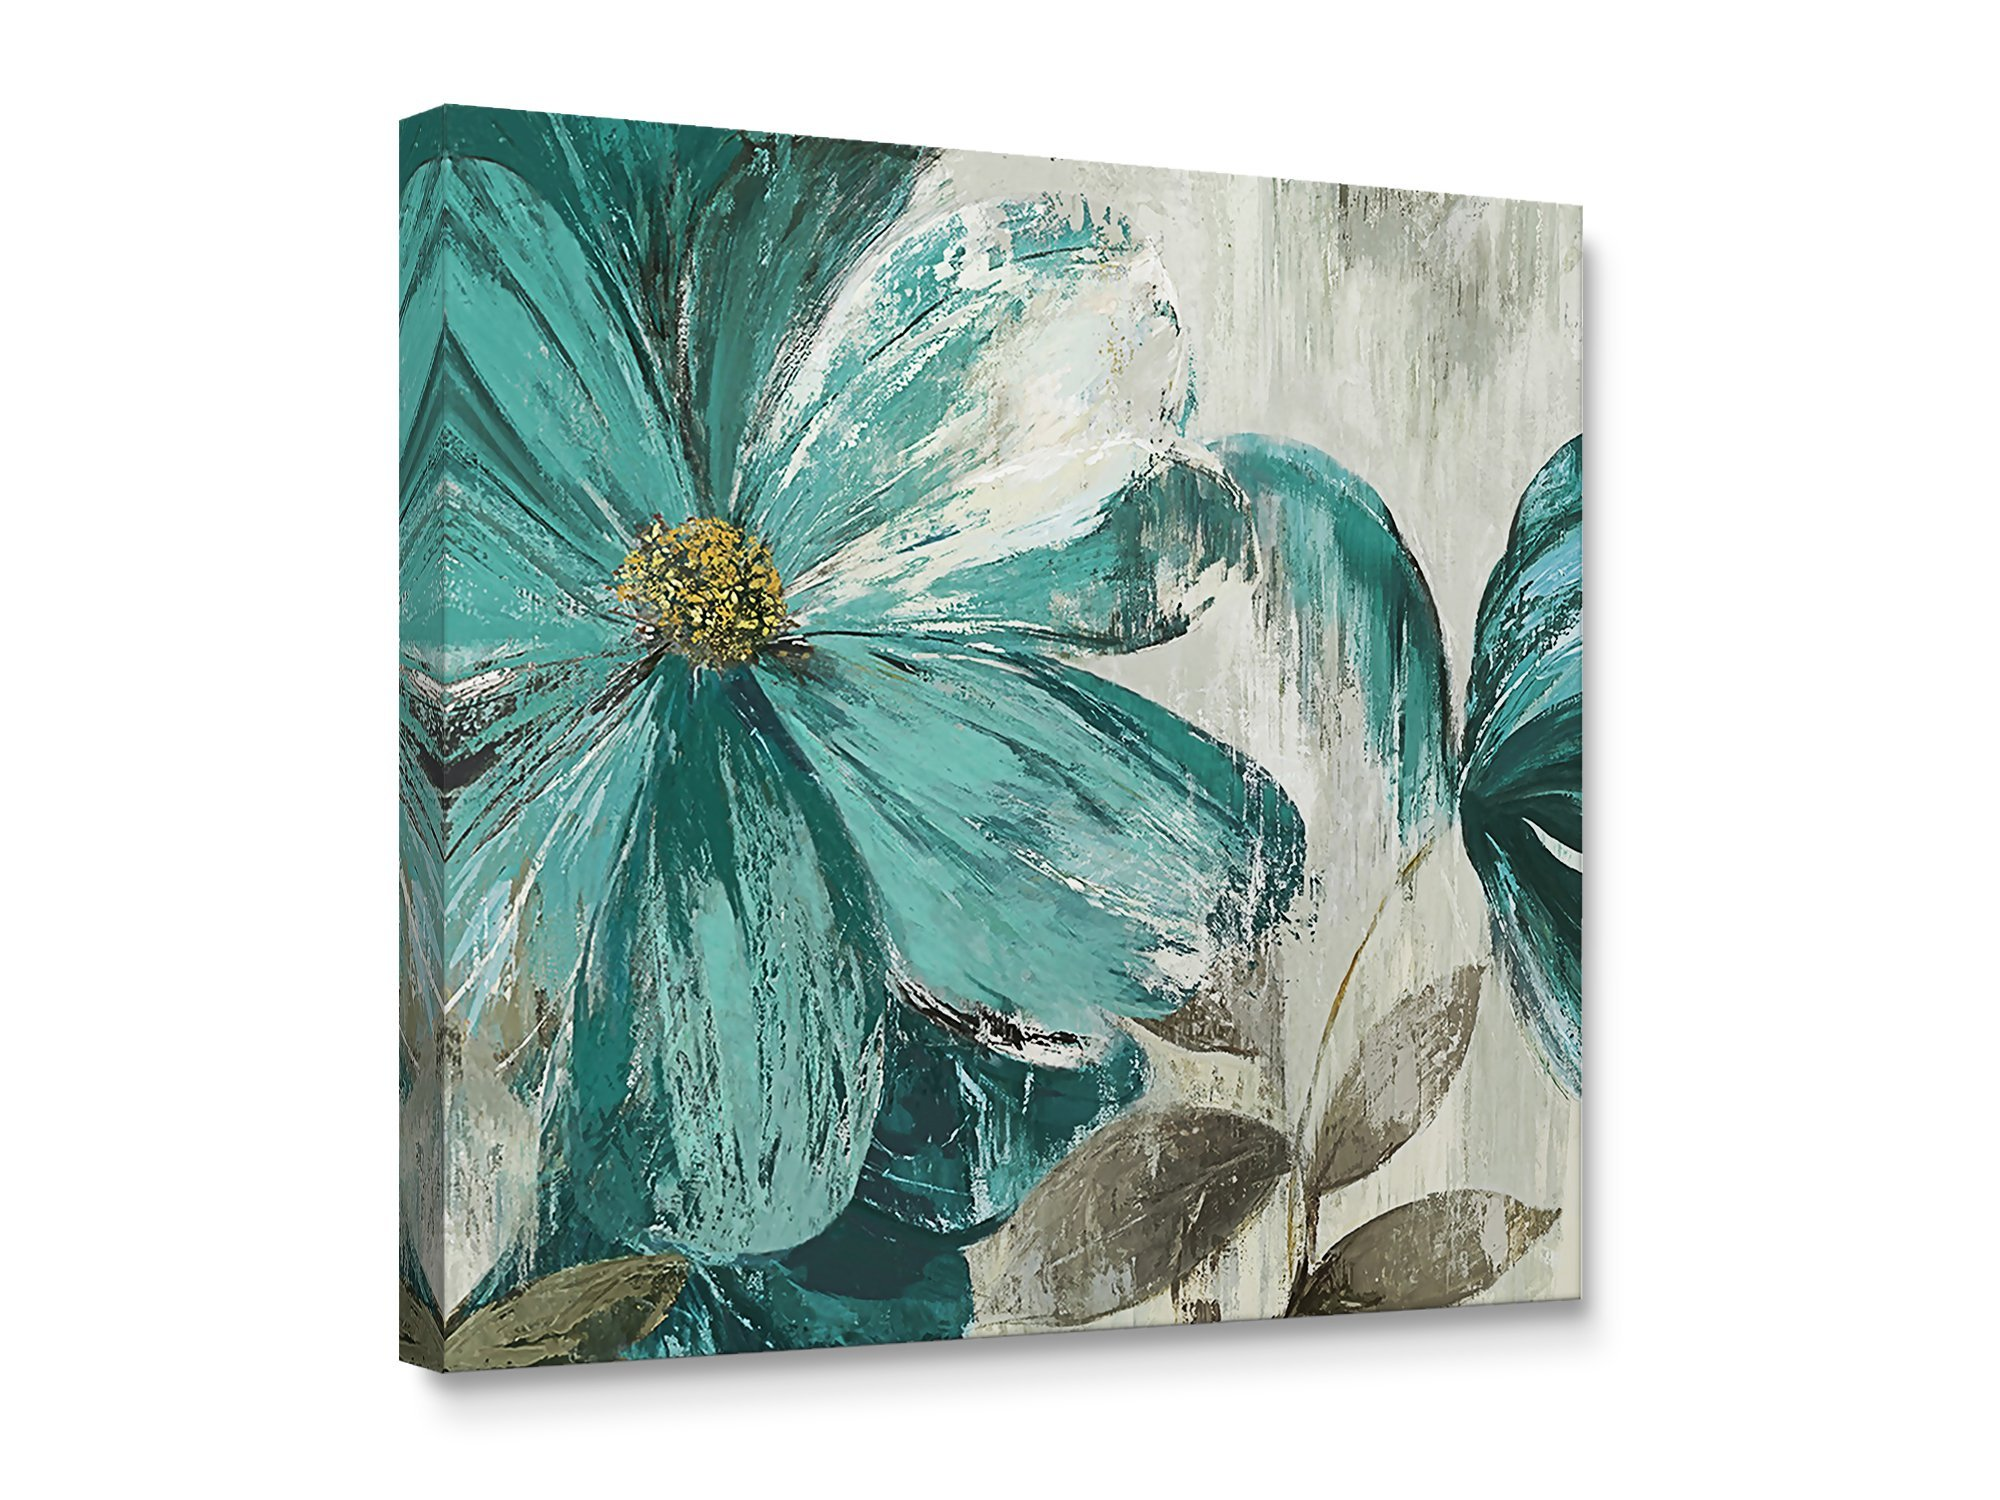 Niwo Art TM - Teal Flower A, Floral painting Artwork - Giclee Wall Art for Home Decor,Office or Lobby, Gallery Wrapped, Stretched, Framed Ready to Hang (16''x16''x3/4'') by Niwo Art